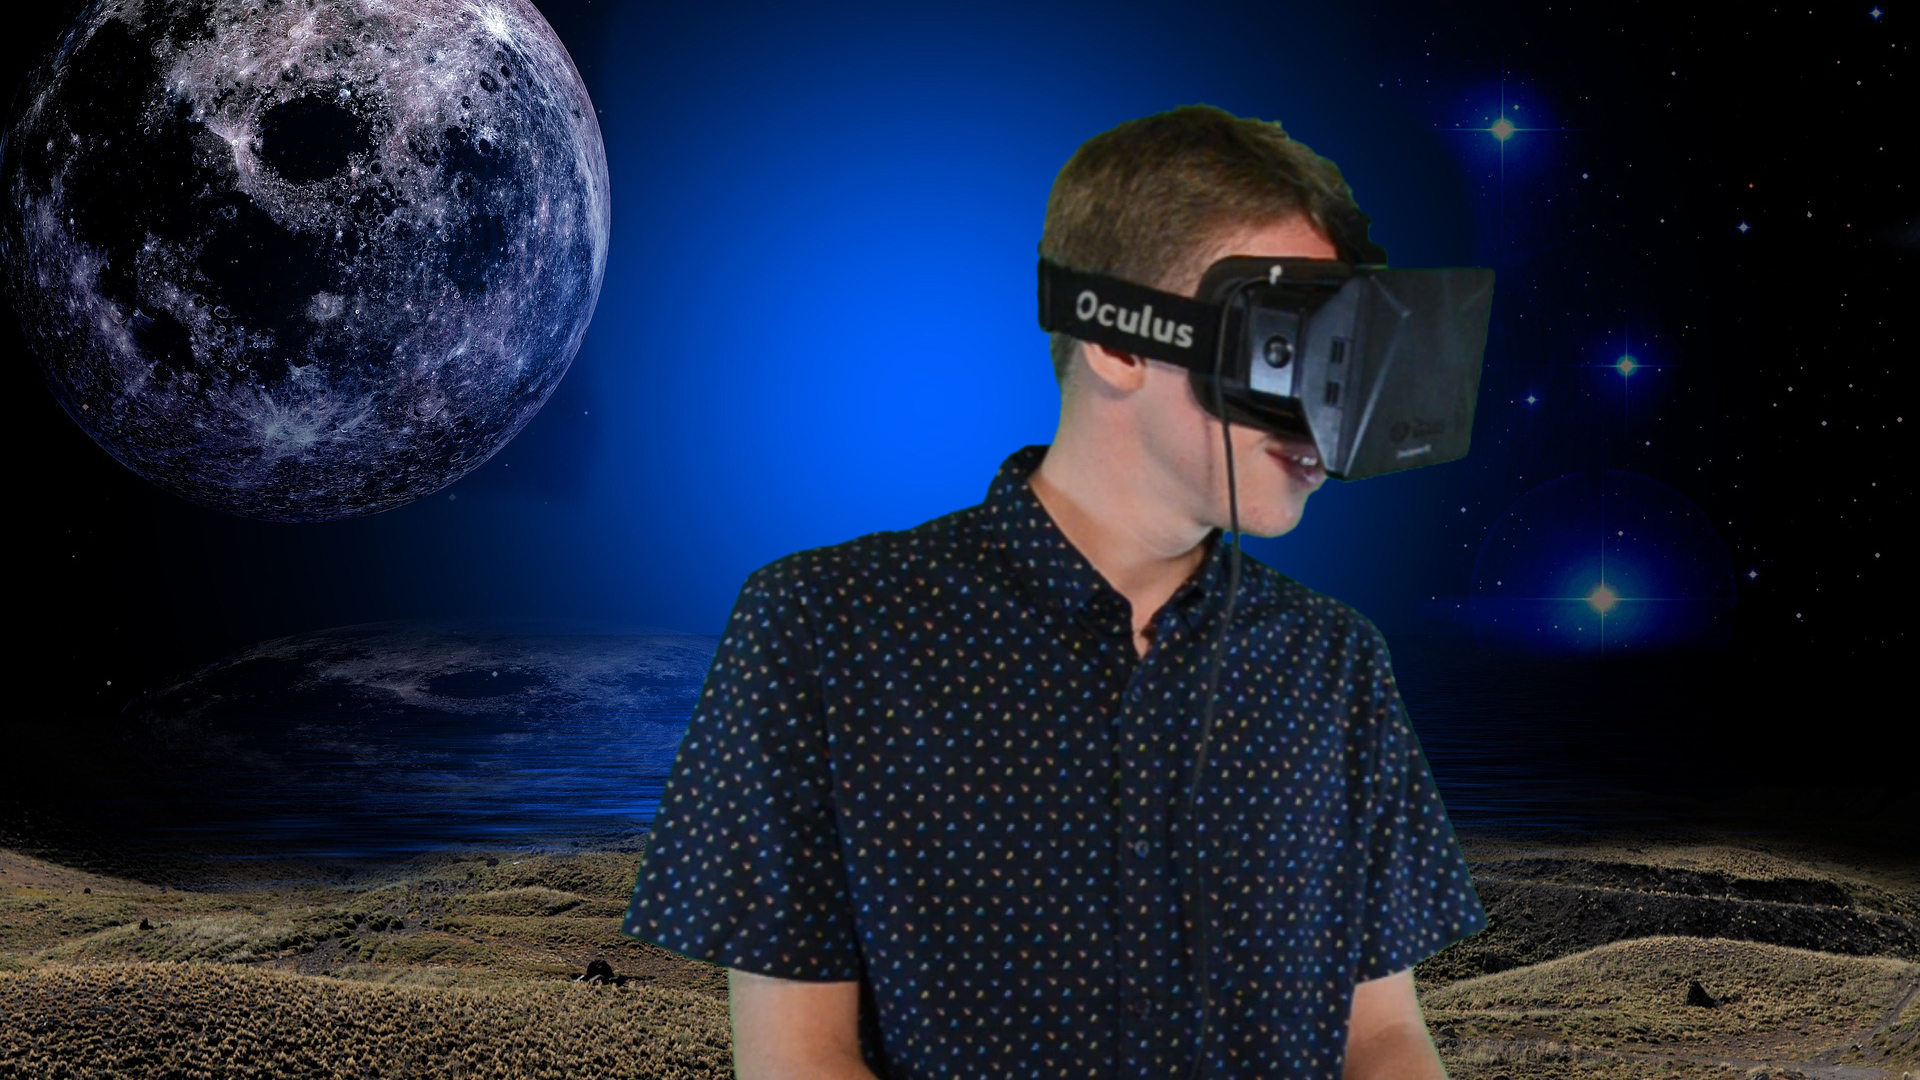 Test drive of Oculus Rift and Google Cardboard. Virtual Reality